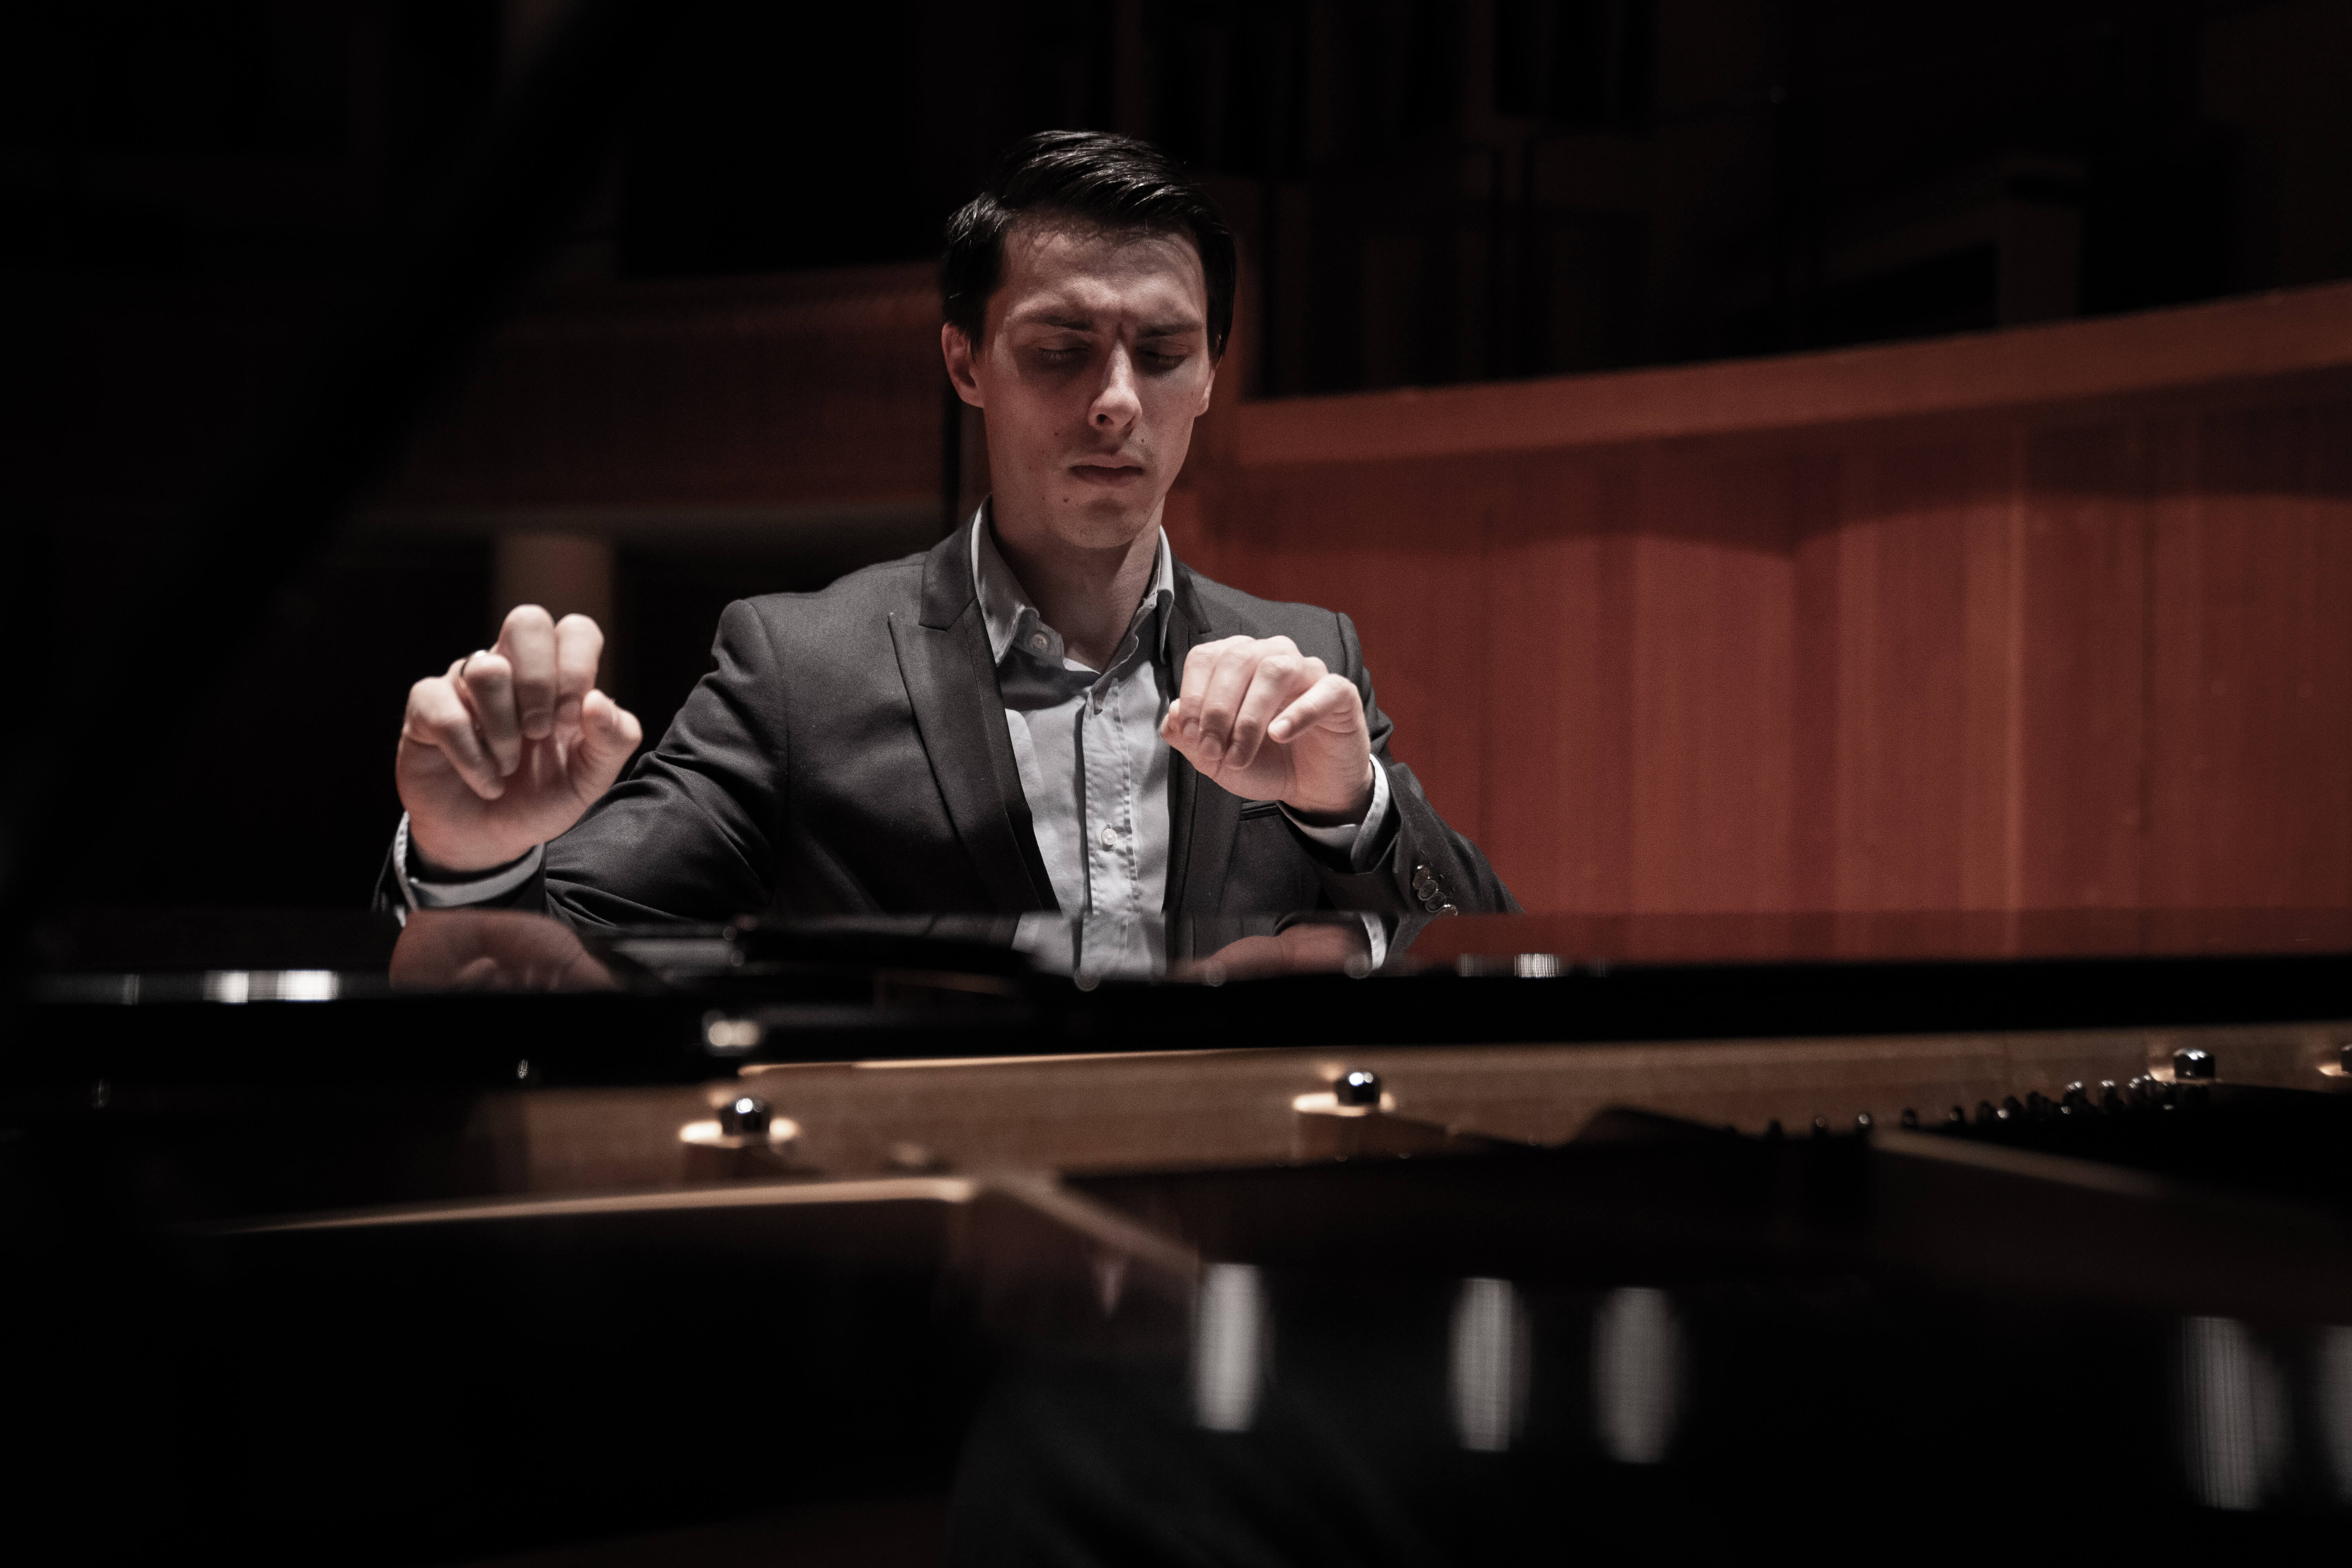 A pianist playing with his hands flying in the air.